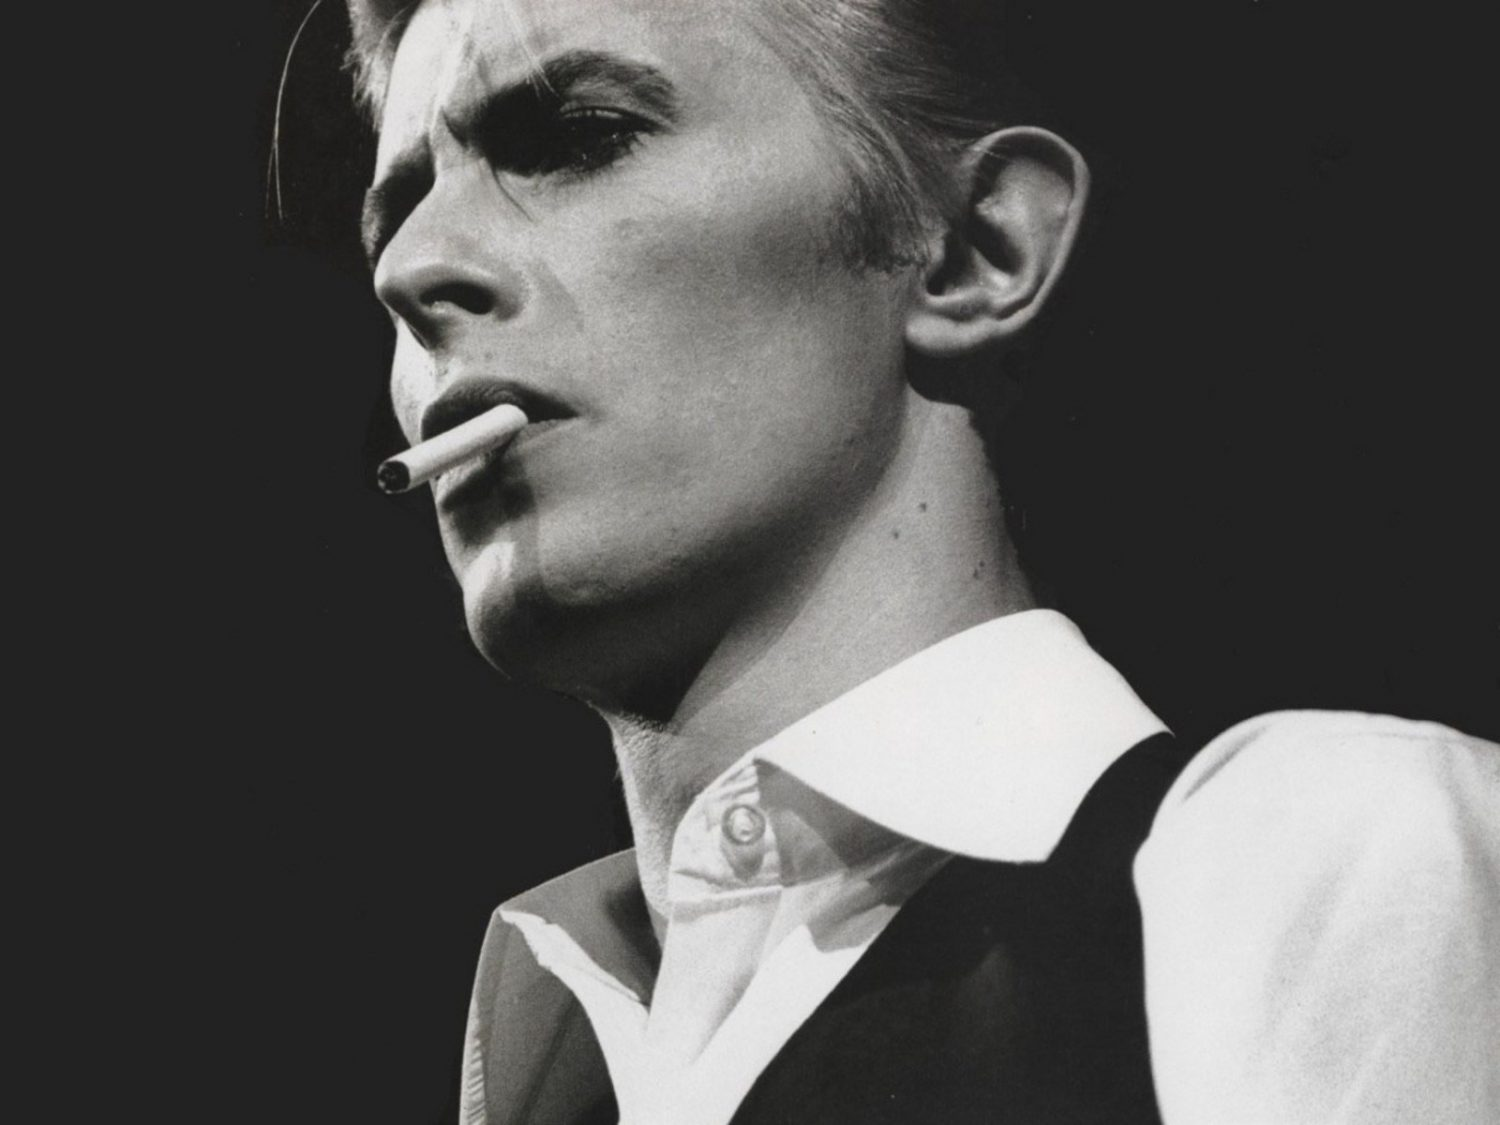 david-bowie-golden-years